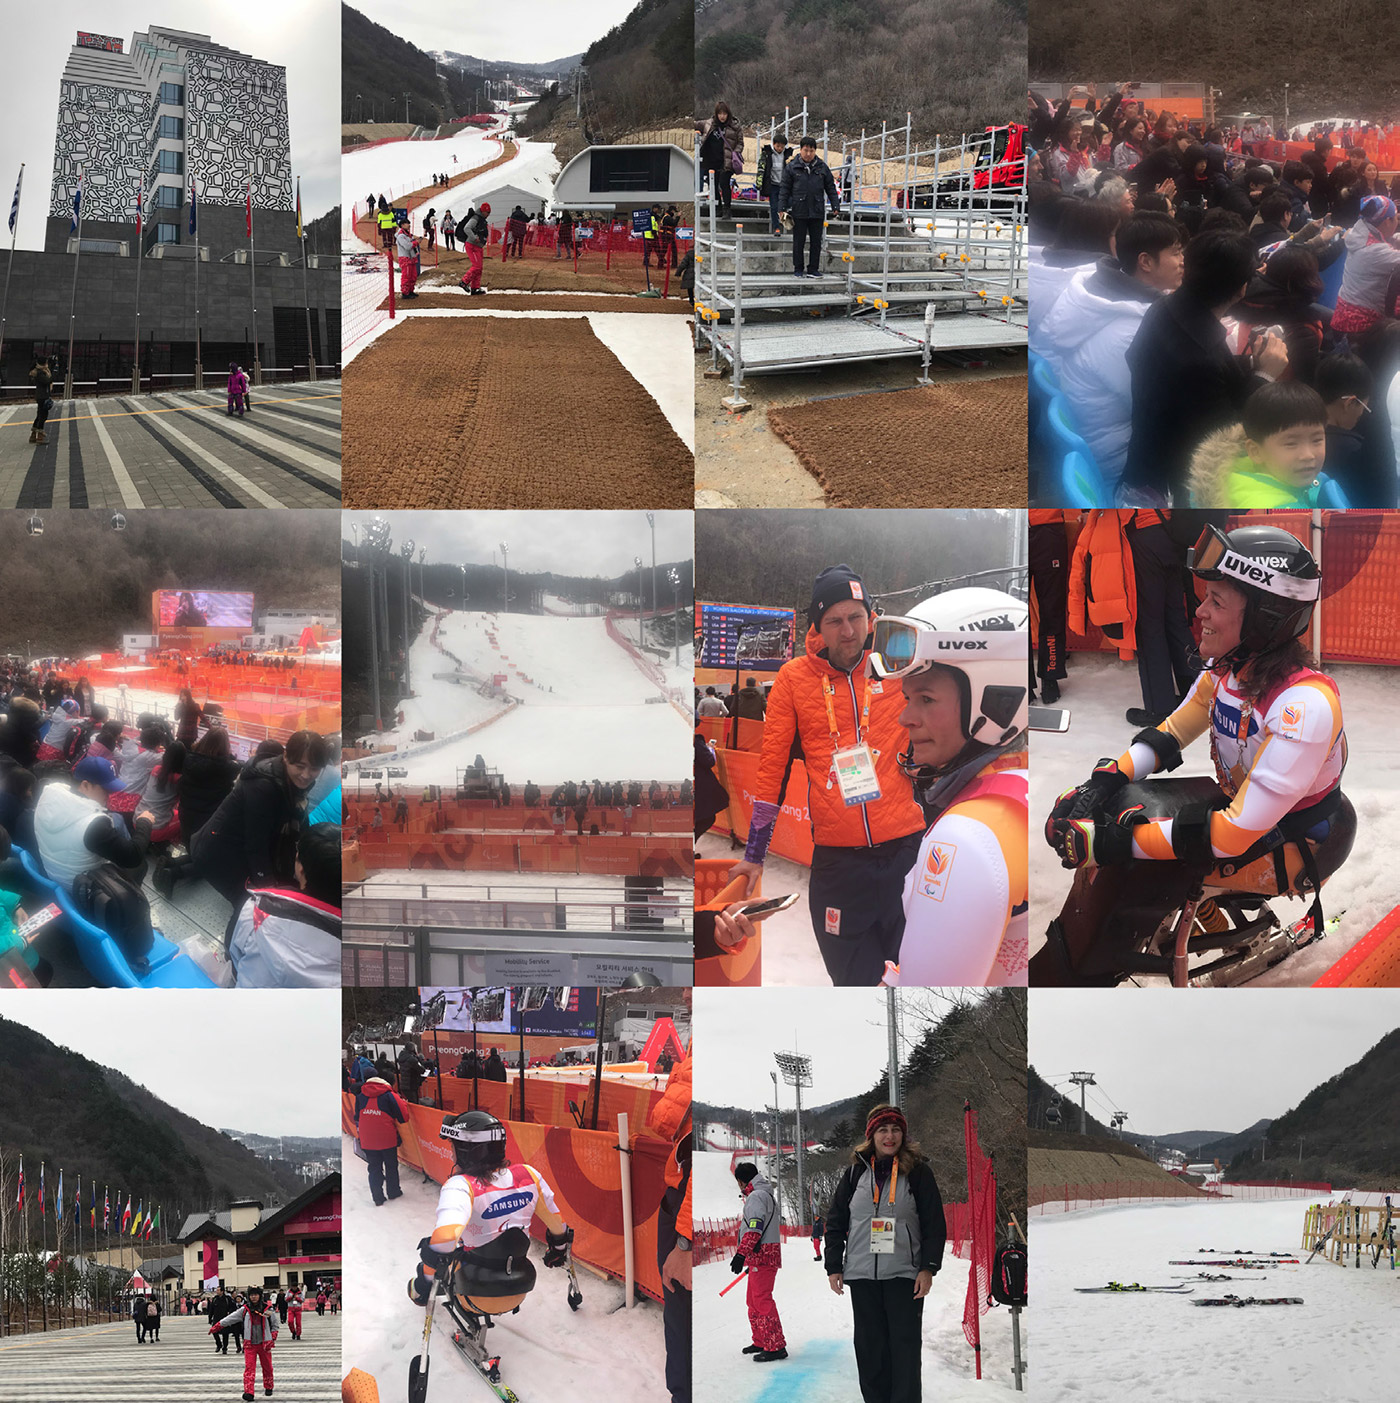 PyeongChang Paralympics 2018 Photo Montage 4 - Alpine Village